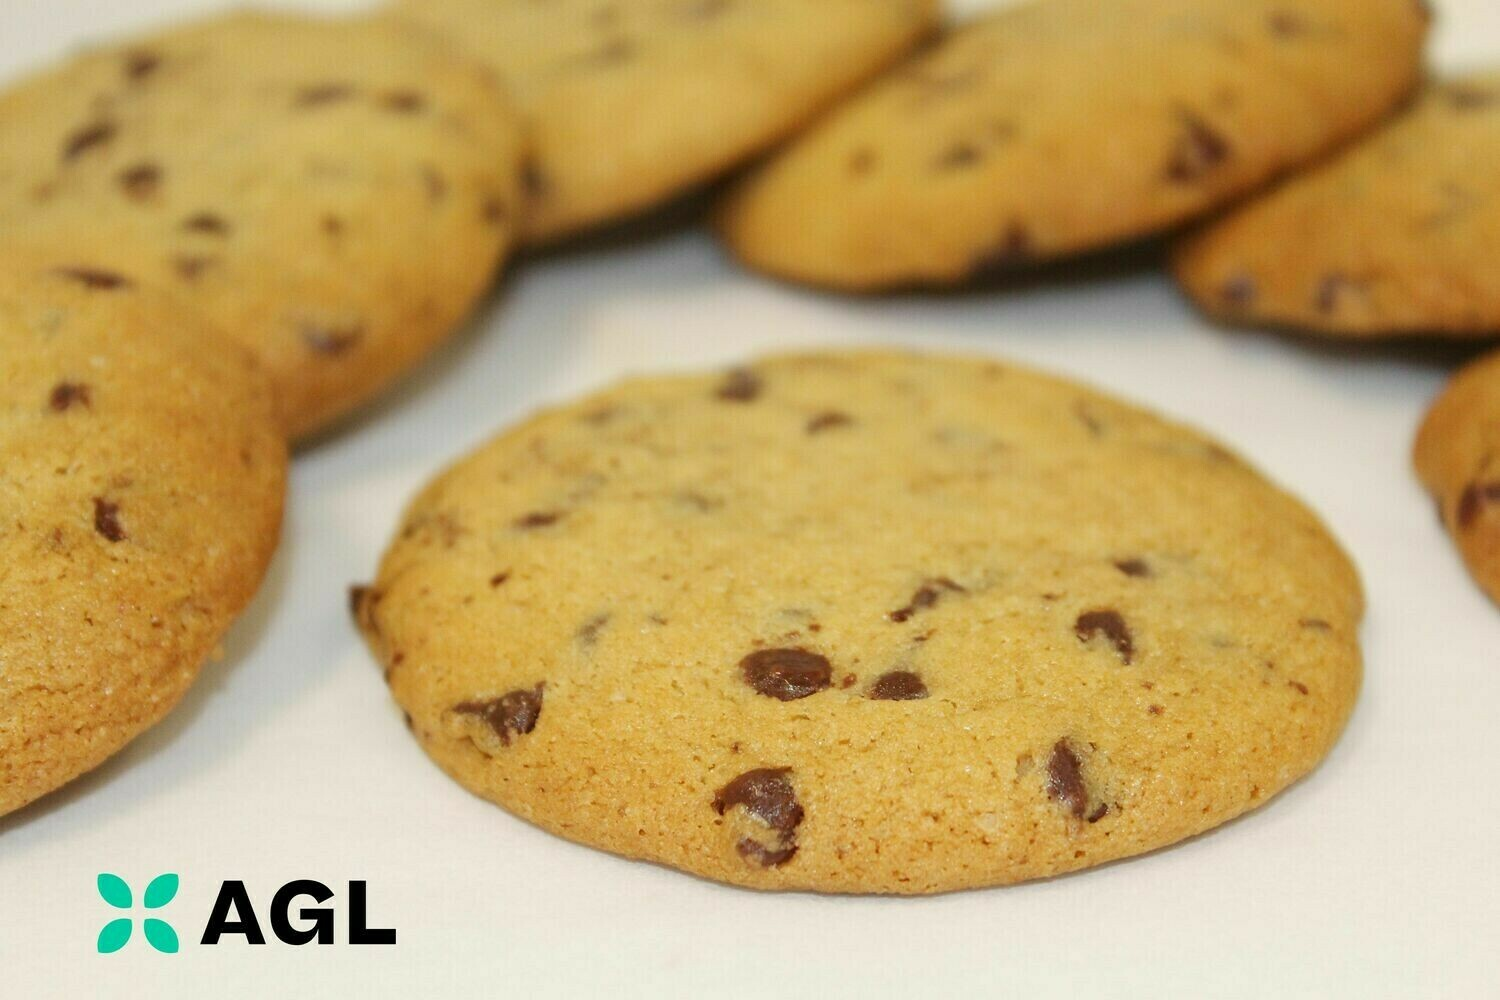 Indicore Chocolate Chip Cookie NDC: 7130 (20mg)(AGL)